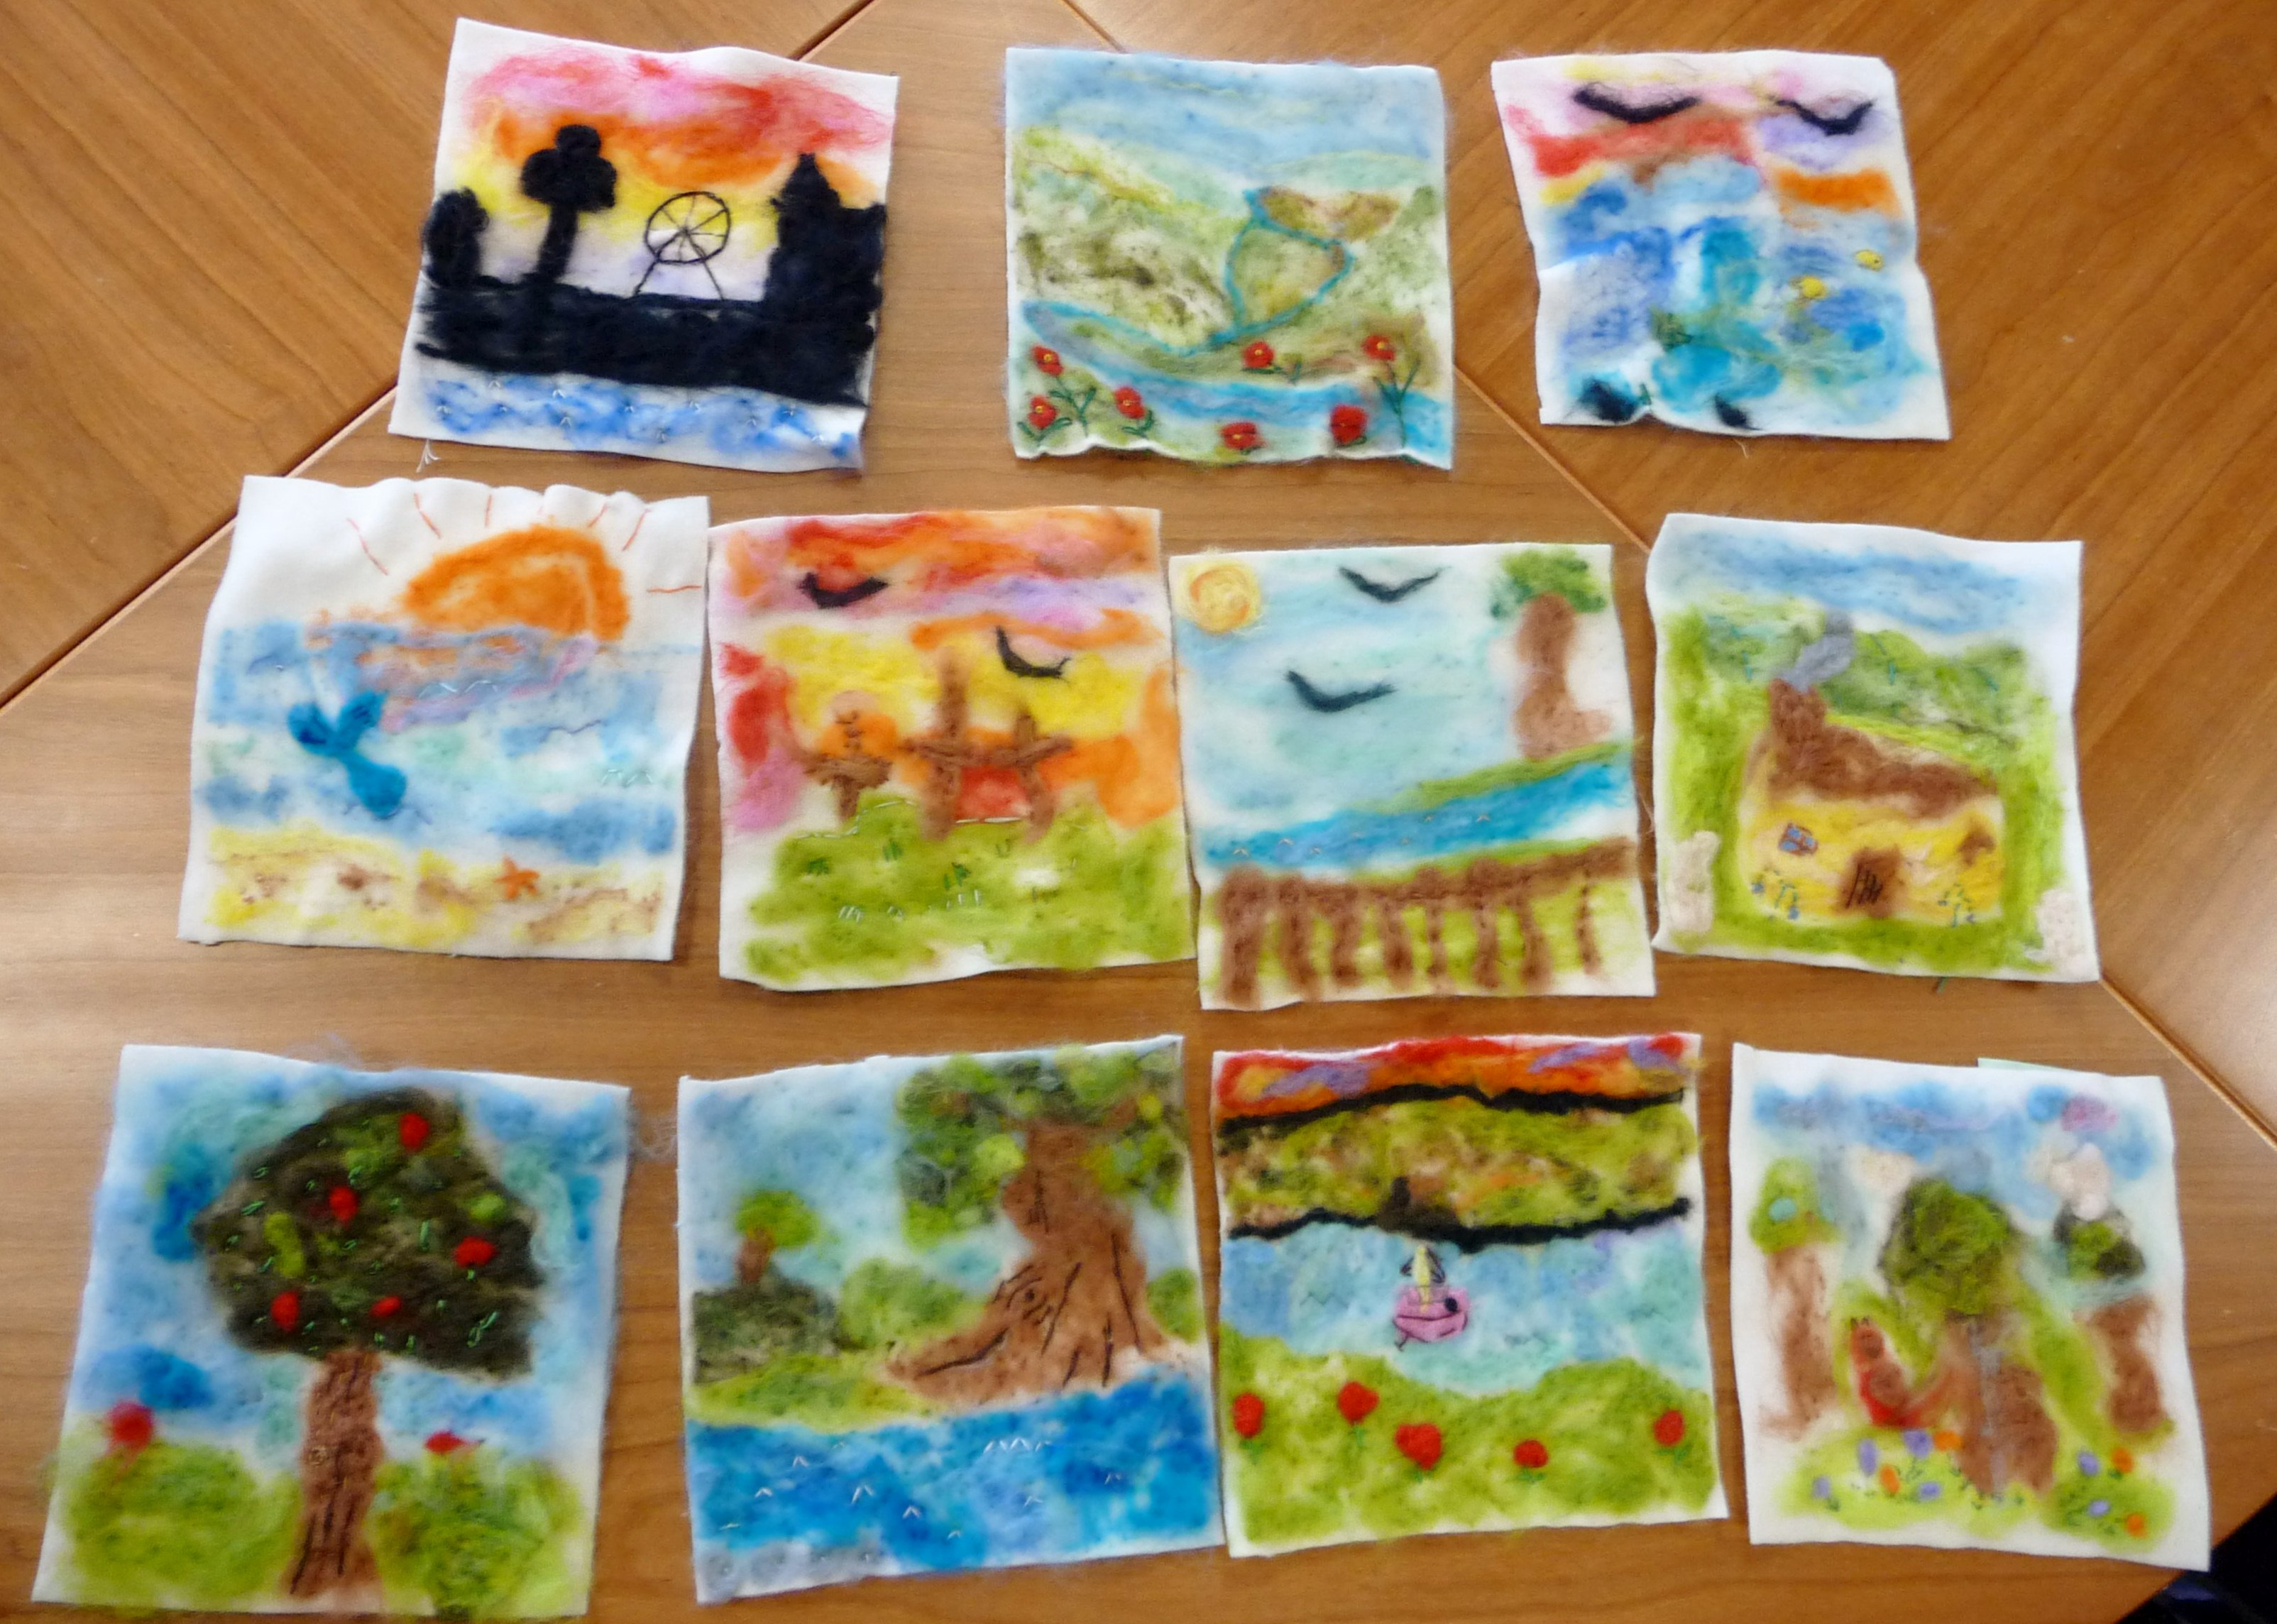 Merseyside YE made needlfelted landscapes and seascapes this month. Here you see their completed pictures with the final embroidery added